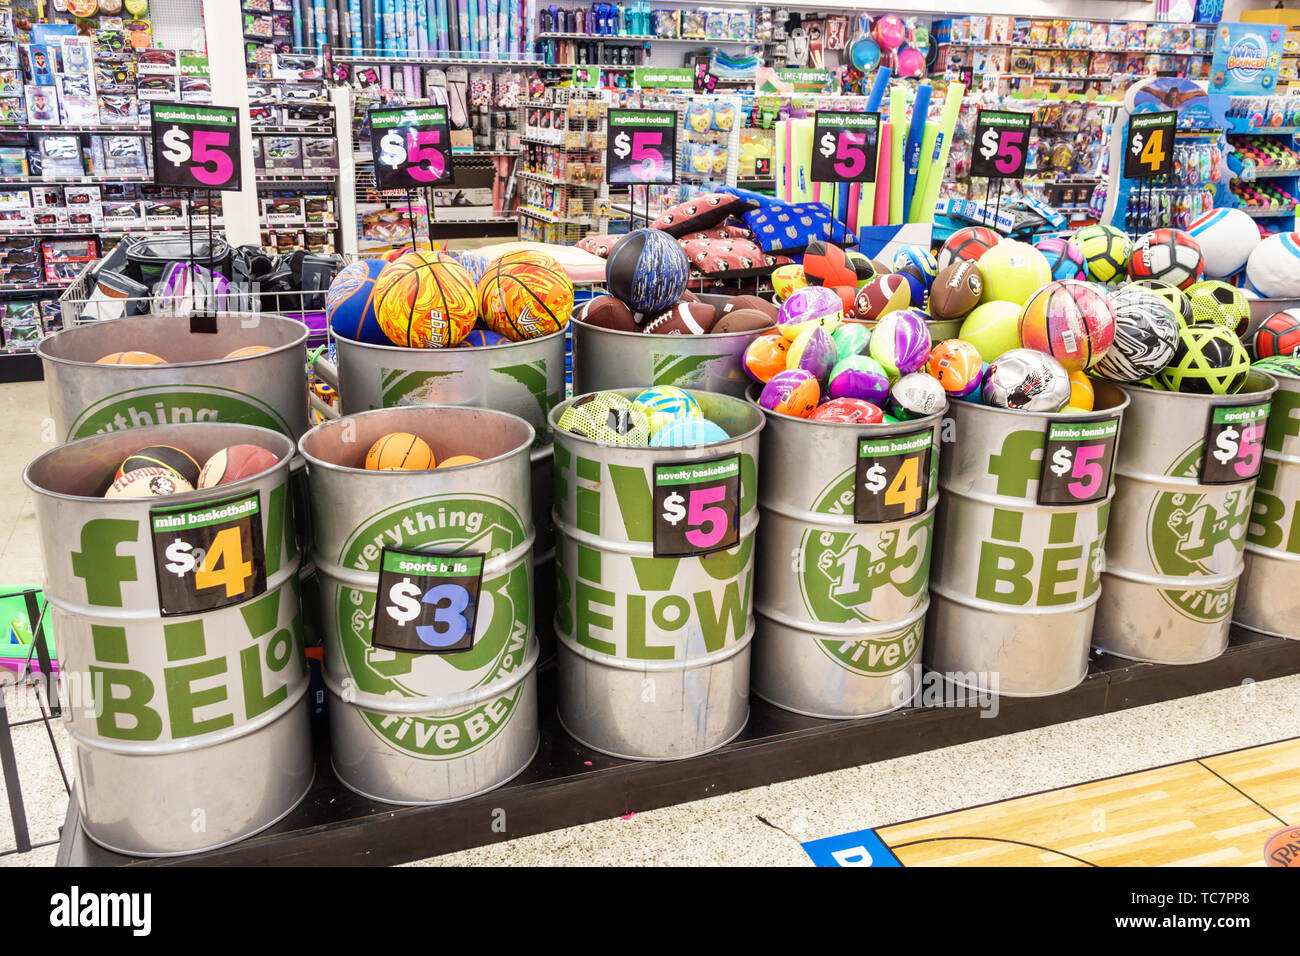 Miami Florida Five Below discount variety store inside shopping display sale inside toys balls metal barrels inexpensive cheap goods - Stock Image